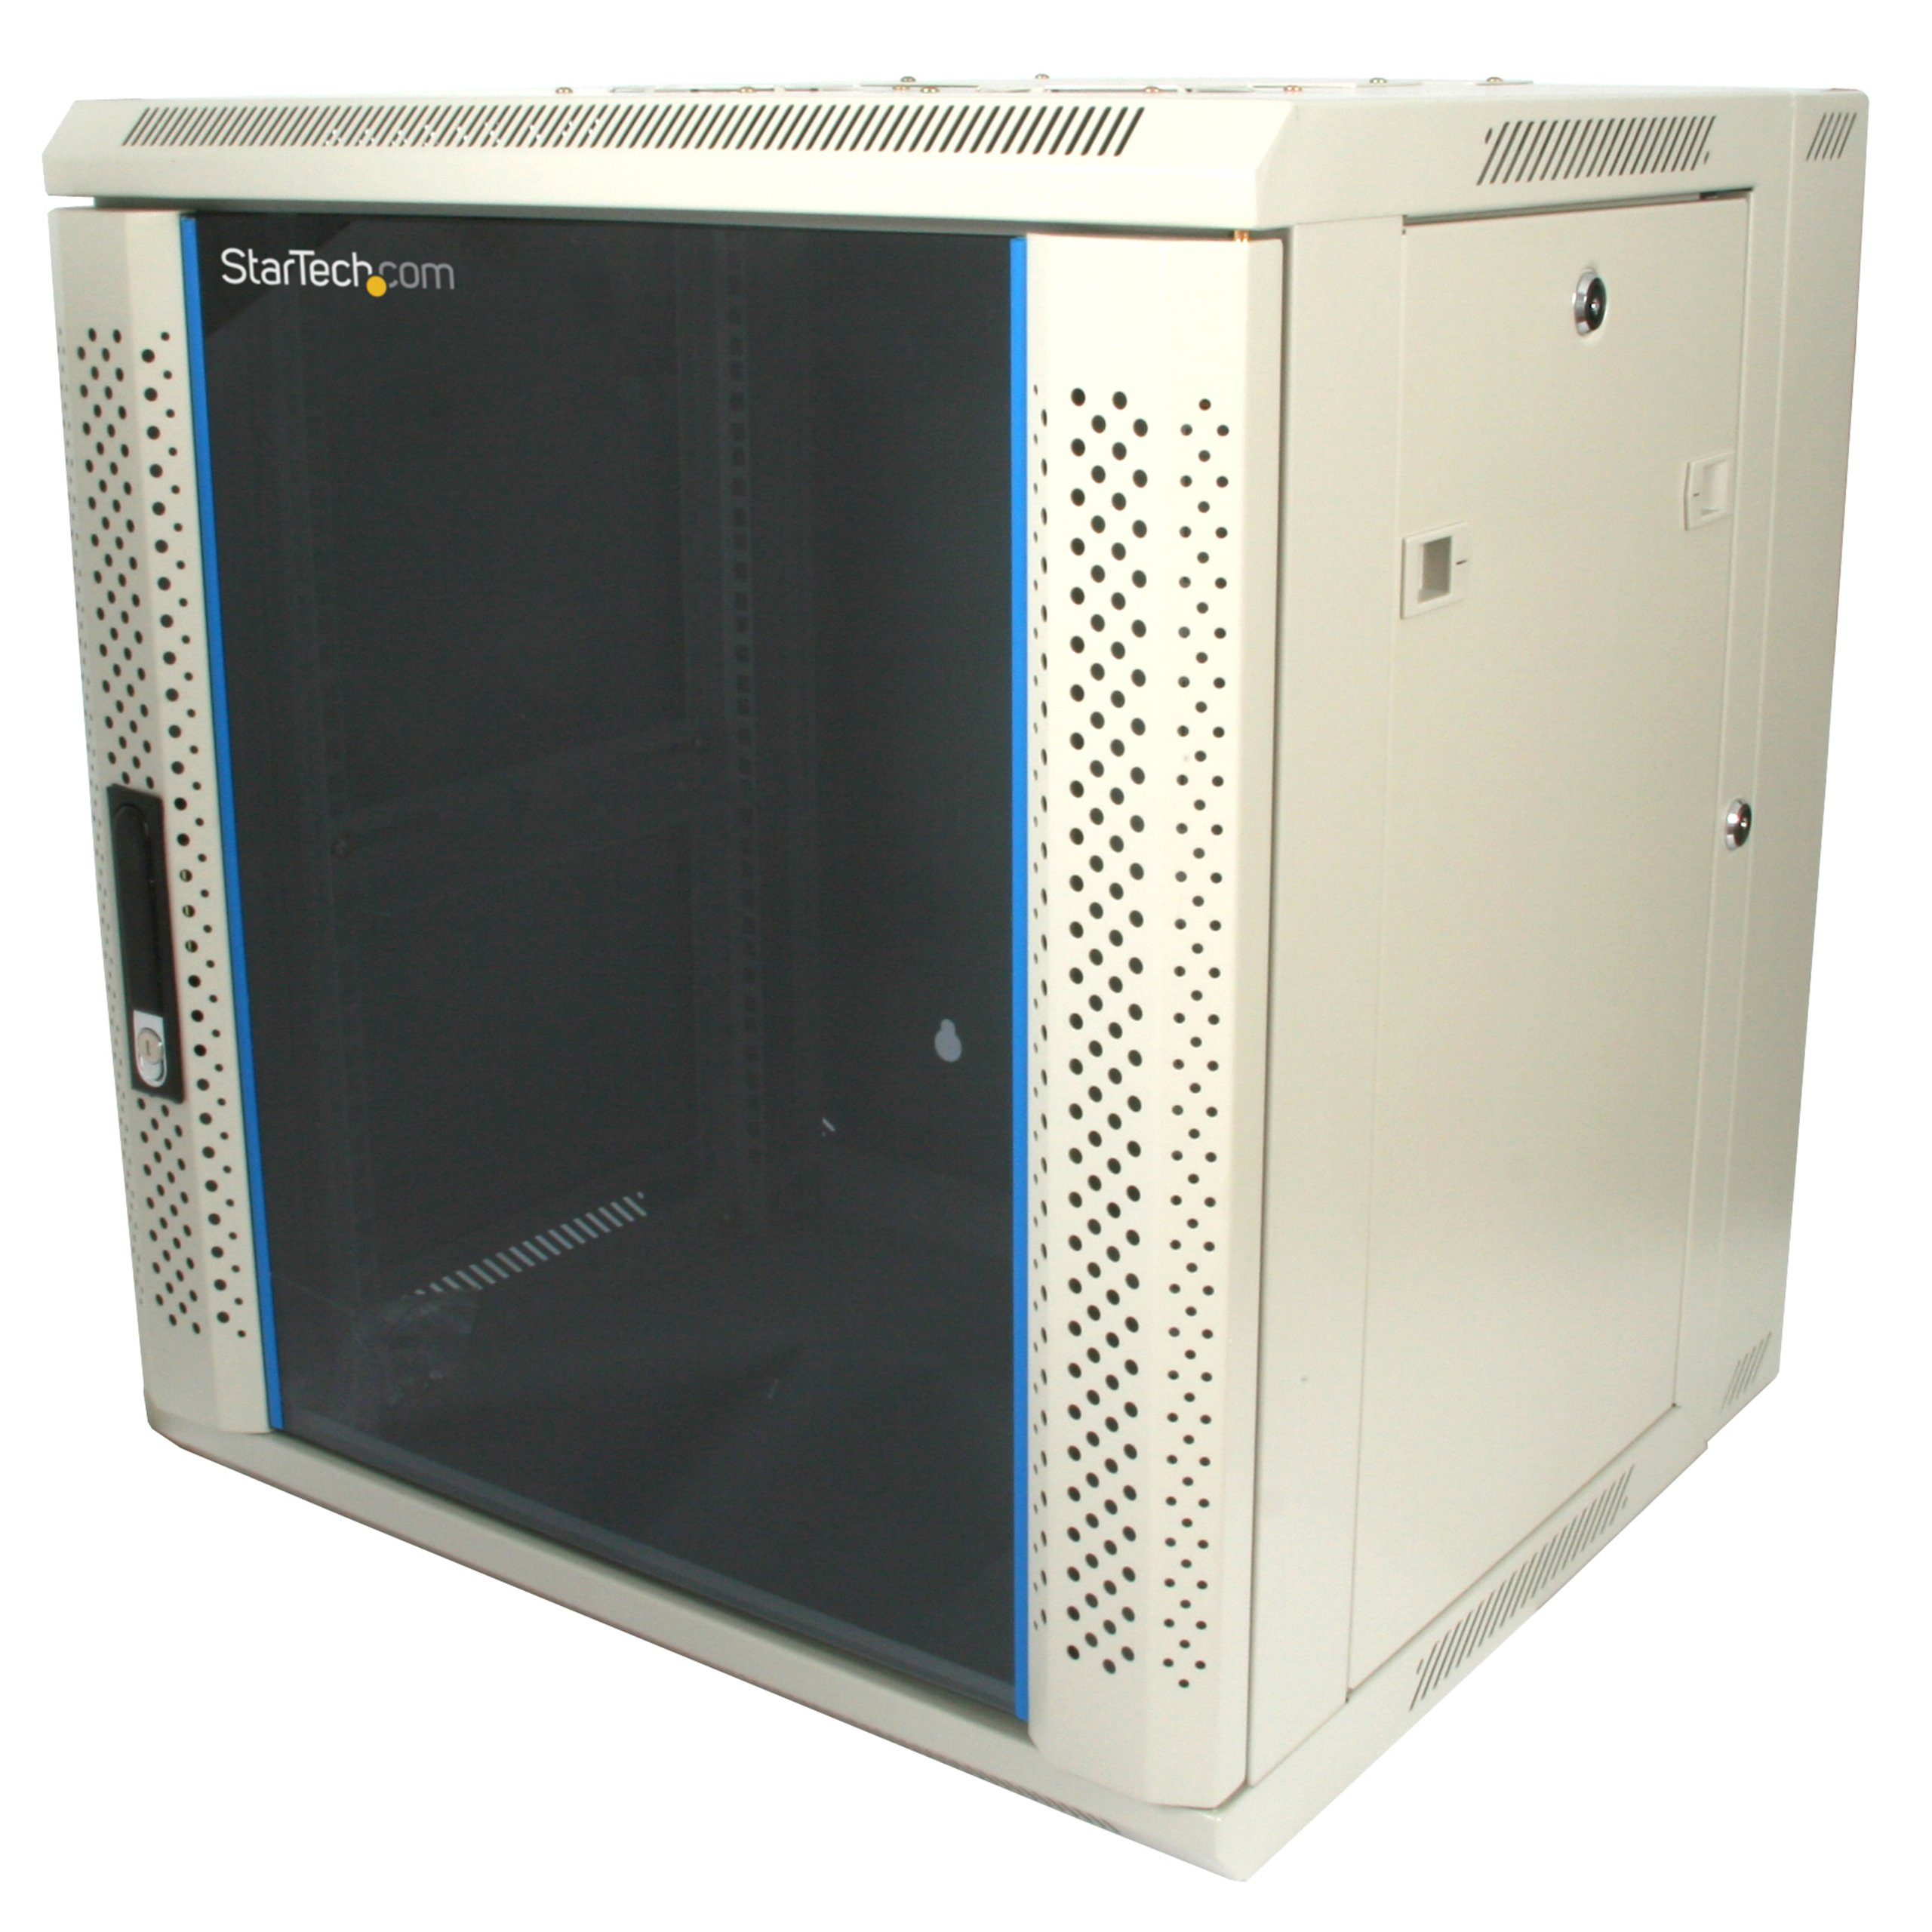 currents server matters nema smaller ge size making cabinet big courtesy of